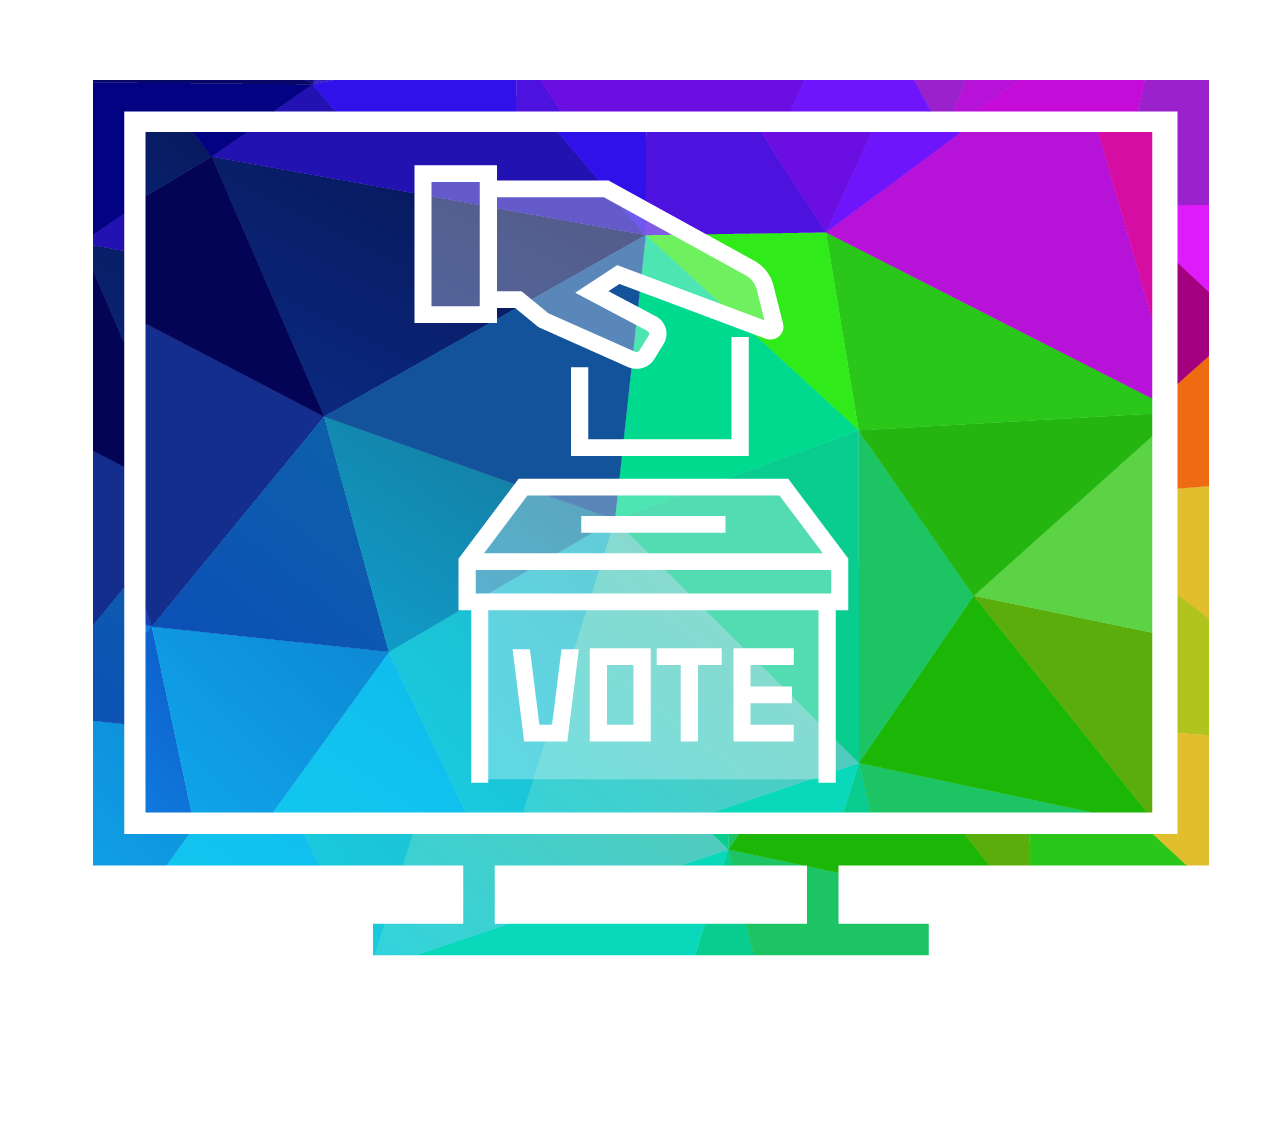 Icon of hand putting ballot in voting box